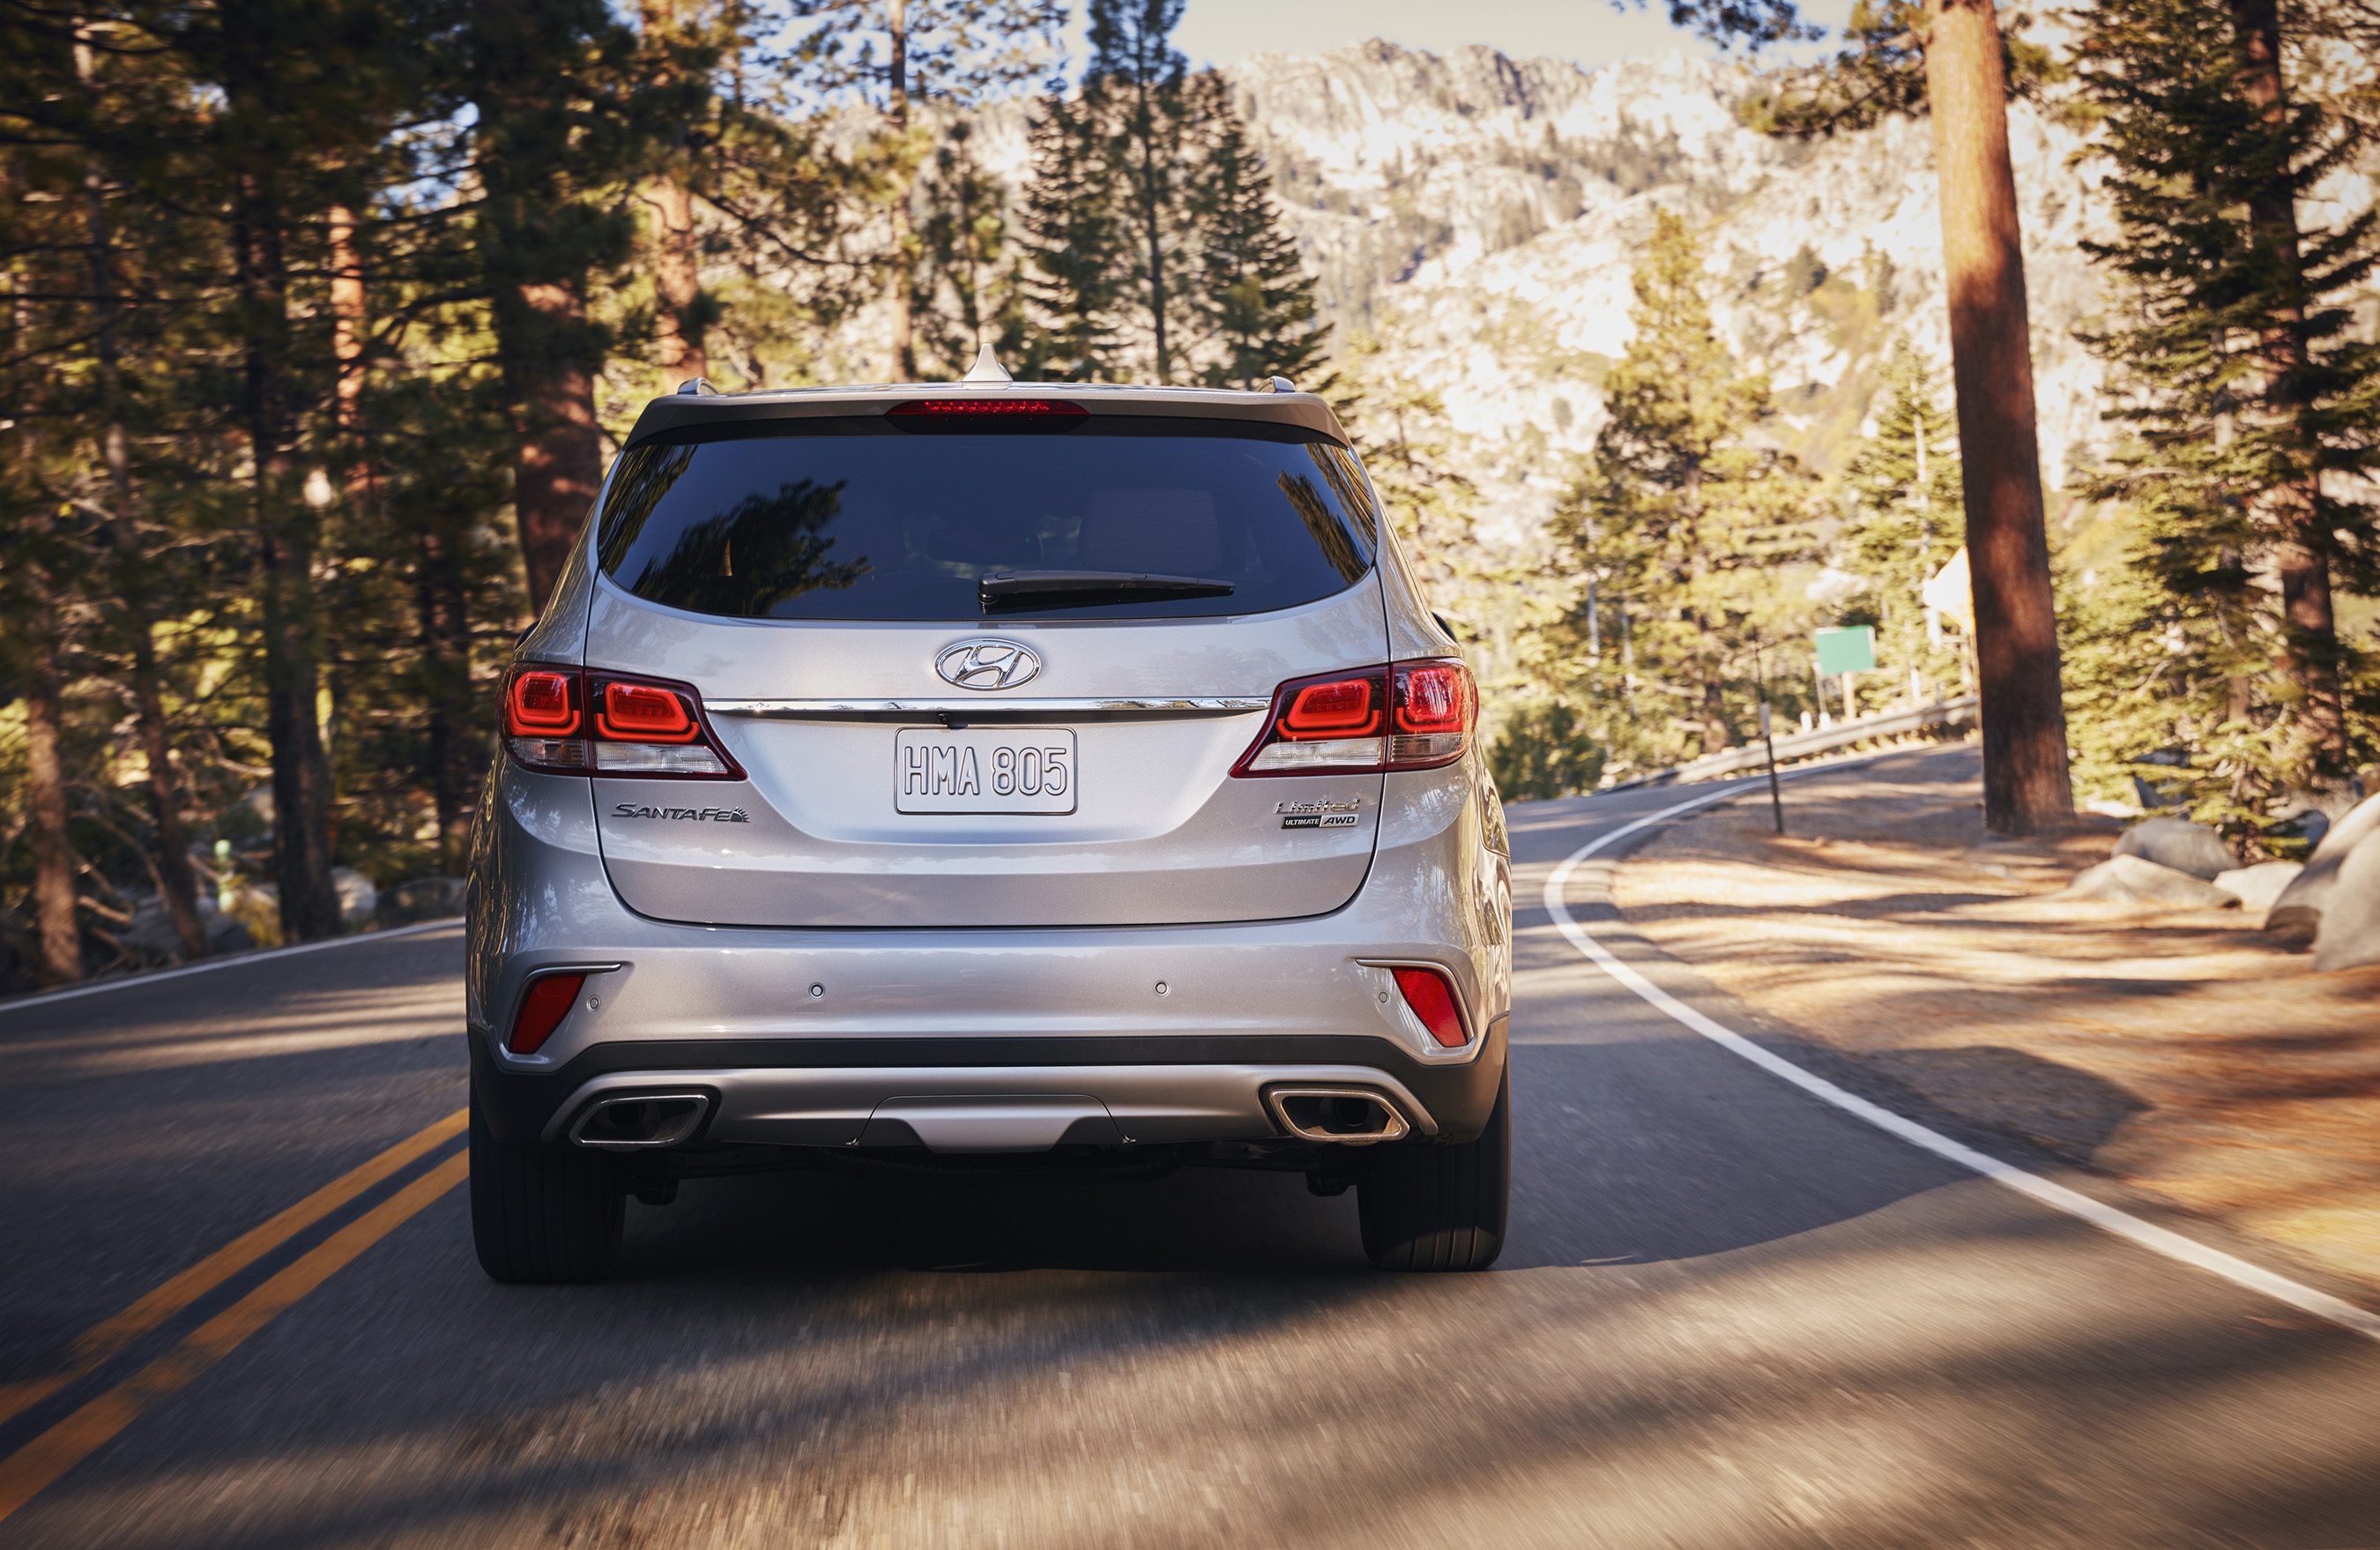 2017 HYUNDAI SANTA FE LINE-UP FEATURES ENHANCED DESIGN, INFOTAINMENT, LED LIGHTING, CONVENIENCE AND SAFETY